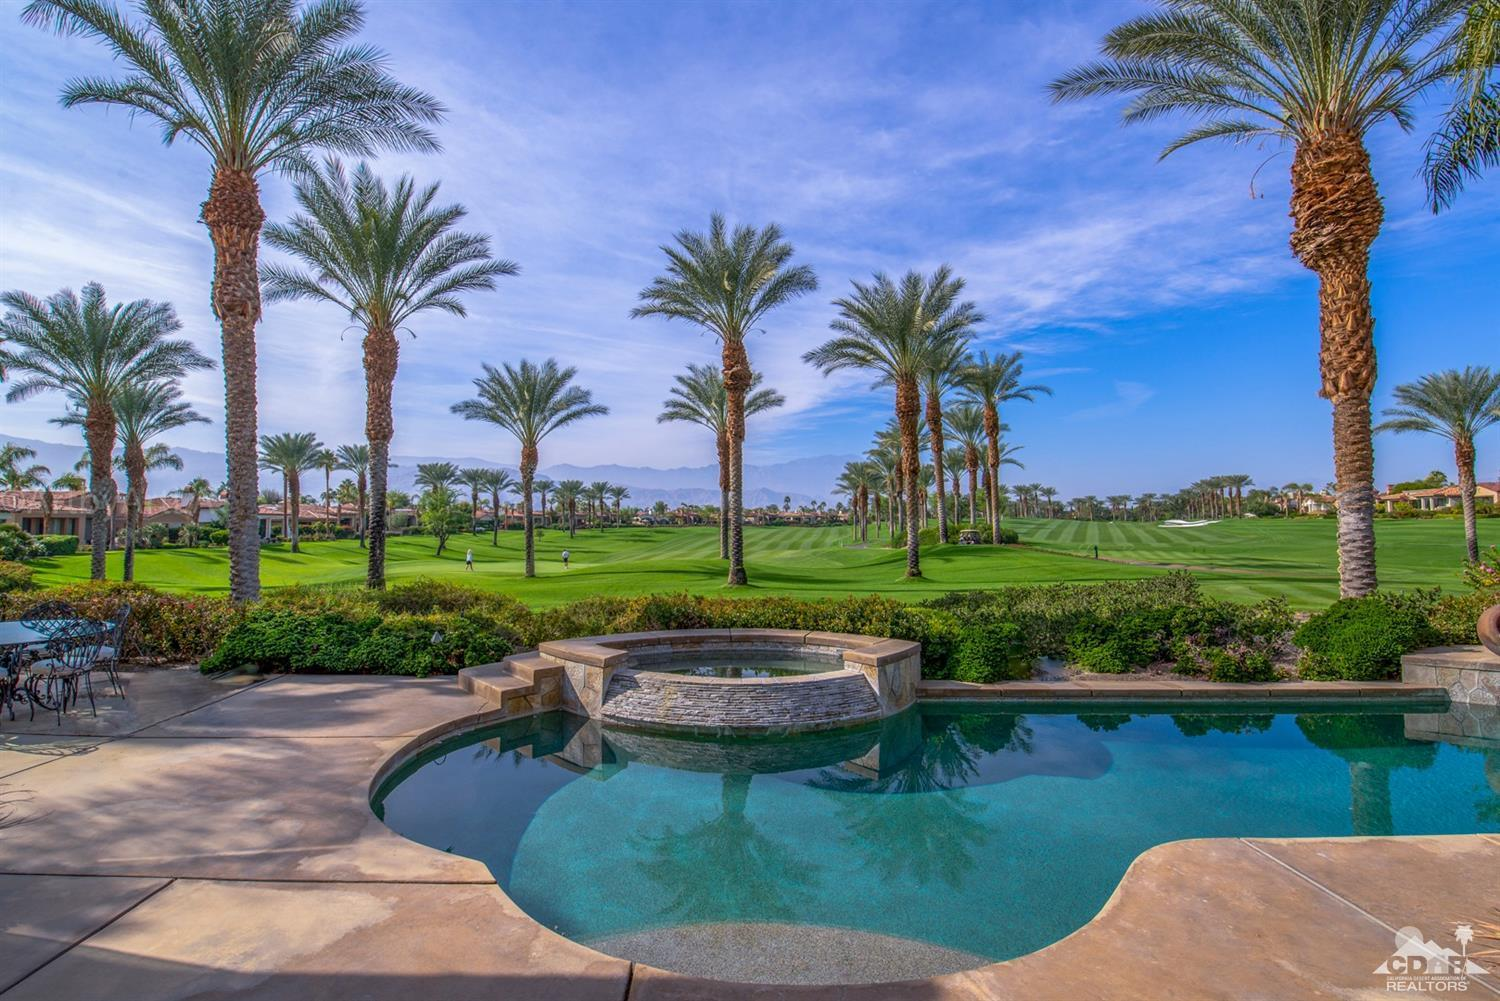 Welcome to the most stunning Community in Indian wells, Toscana Country Club. This fabulous home has 180 degree views of Southern and Western majestic mountains overlooking the double fairway 2nd and 3rd of the Jack Nicklaus SIGNATURE GOLF COURSE. You will arrive to a magnificent curb appeal leading to a charming courtyard and private casita. Upon entry you will be greeted with the most striking, breathtaking,and endless mountain views! Interior features include elegant travertine floors, four grand fireplaces, Wolf and Subzero stainless appliances. Outdoor entertaining includes covered seating area with fire place, a 40'pool, spa, buit-in cooking and BBQ with gorgeous flagstone counters. You will find this to be one of the most desirable homes and locations of Toscana country Club has to offer.